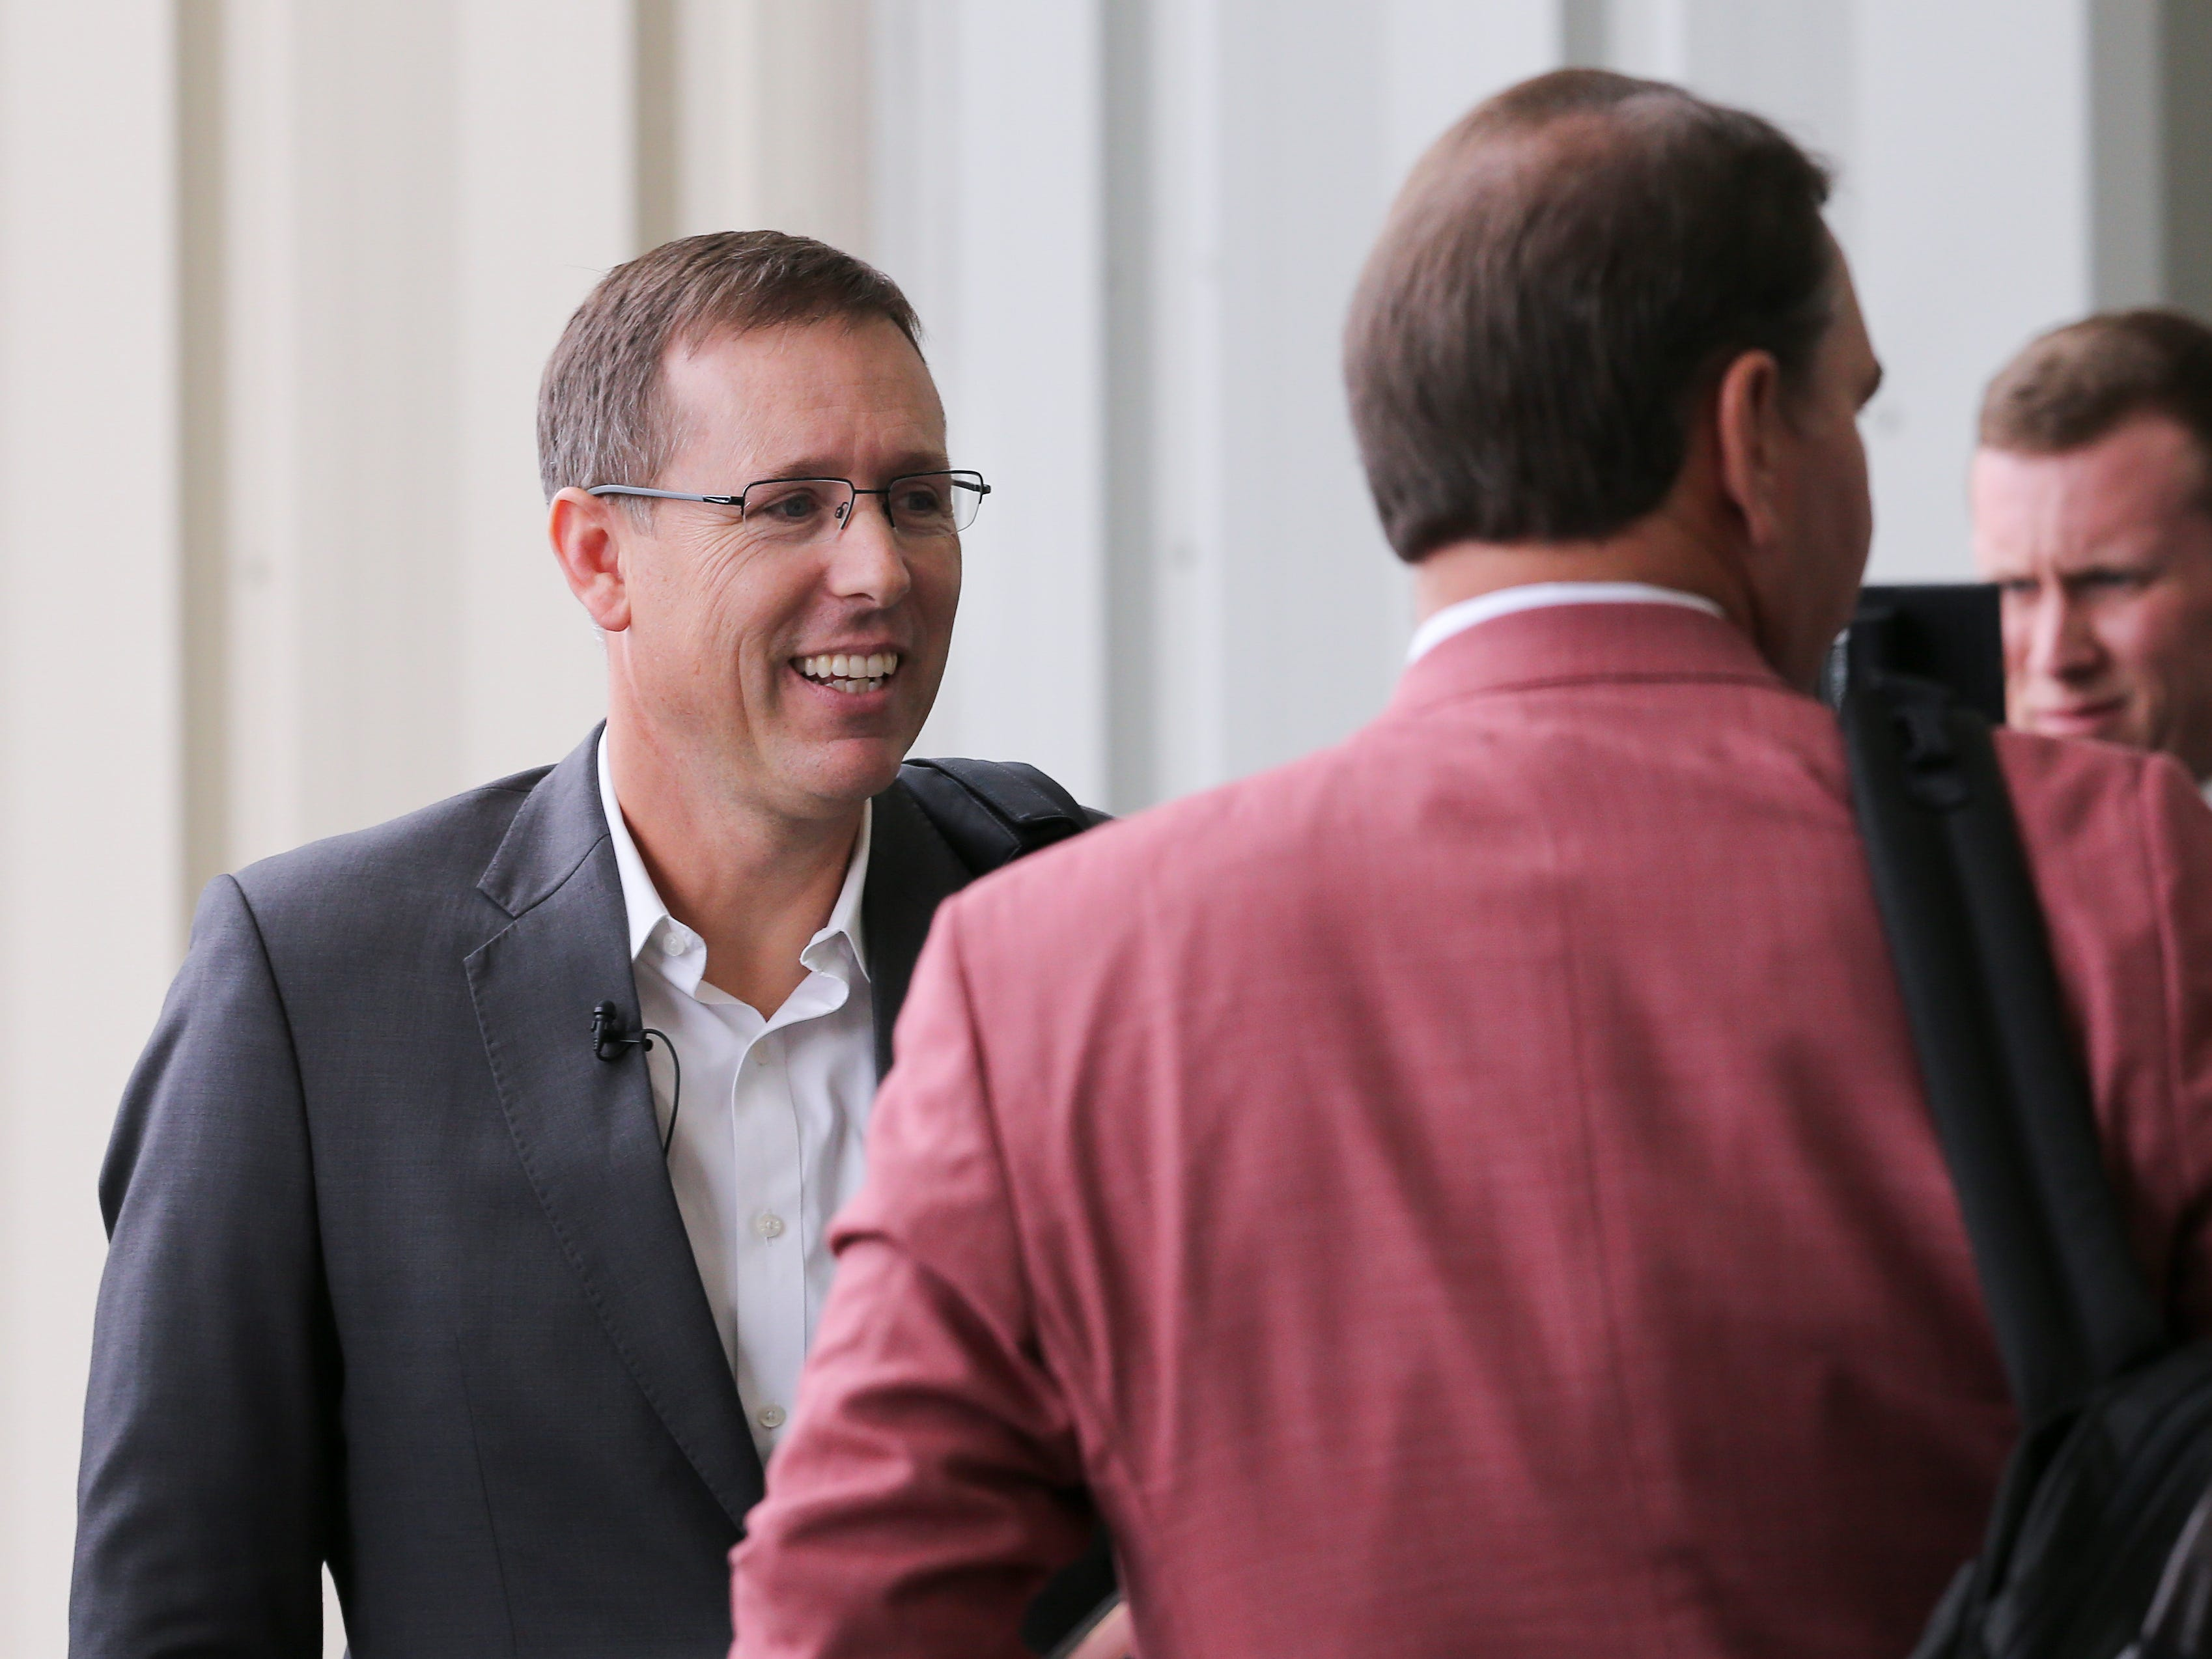 Appalachian State head football coach Scott Satterfield, left, chats briefly with U of L athletic director Vince Tyra after exiting a private plane in Louisville.  Satterfield expects to be named the new head football coach at U of L.  Dec. 4, 2018